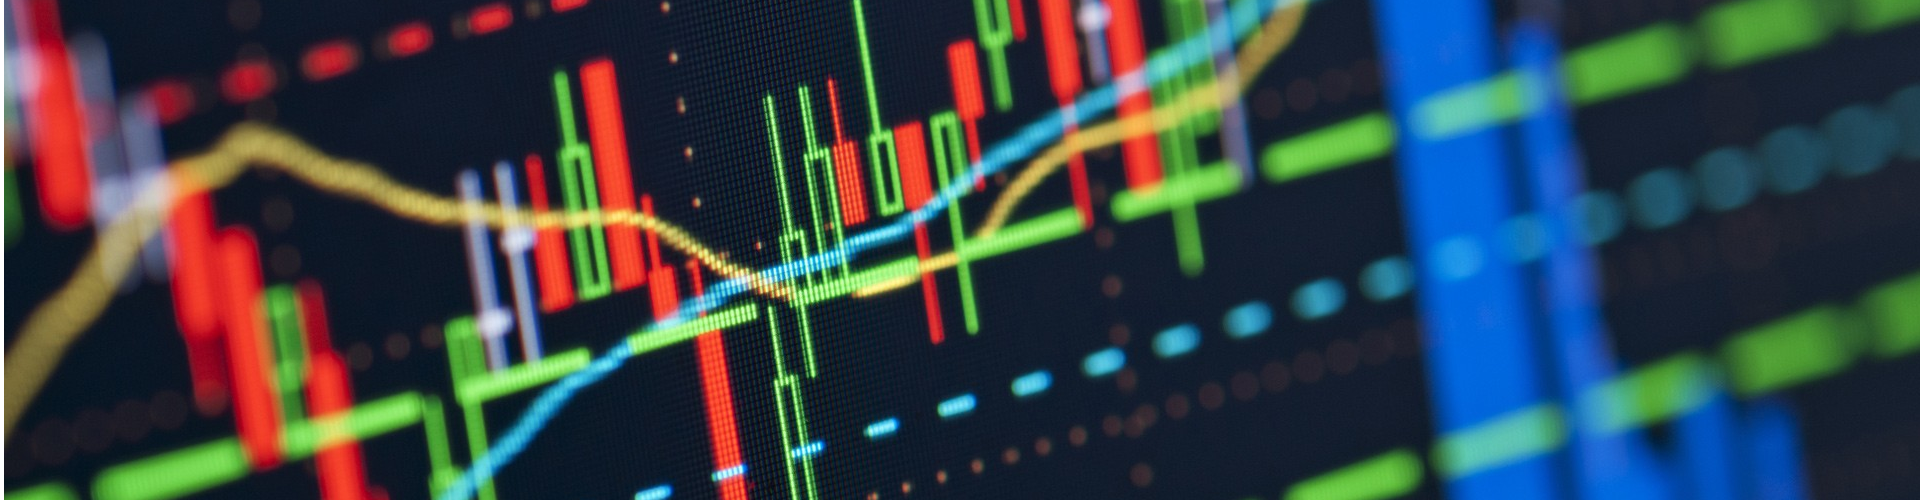 Analysis of the financial markets